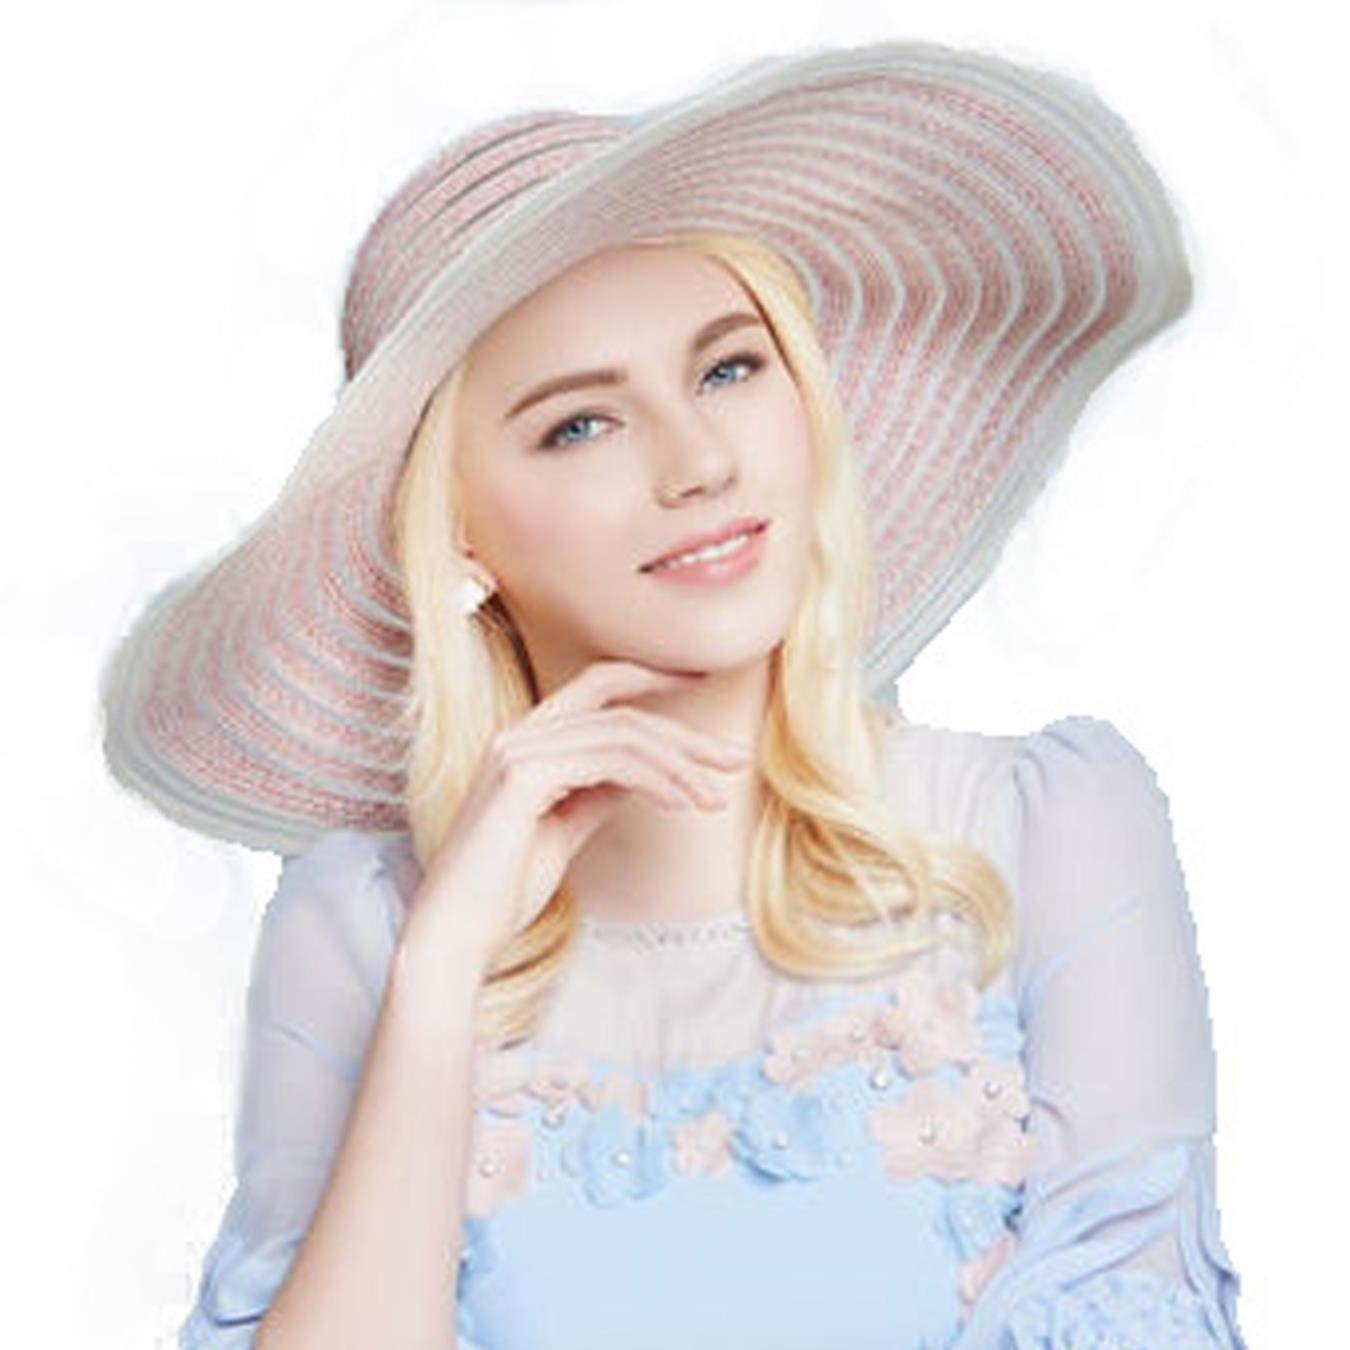 79c56bccb09 Get Quotations · Female Large Brim Floppy Straw Hat for Womens Summer Beach  Sun Hats